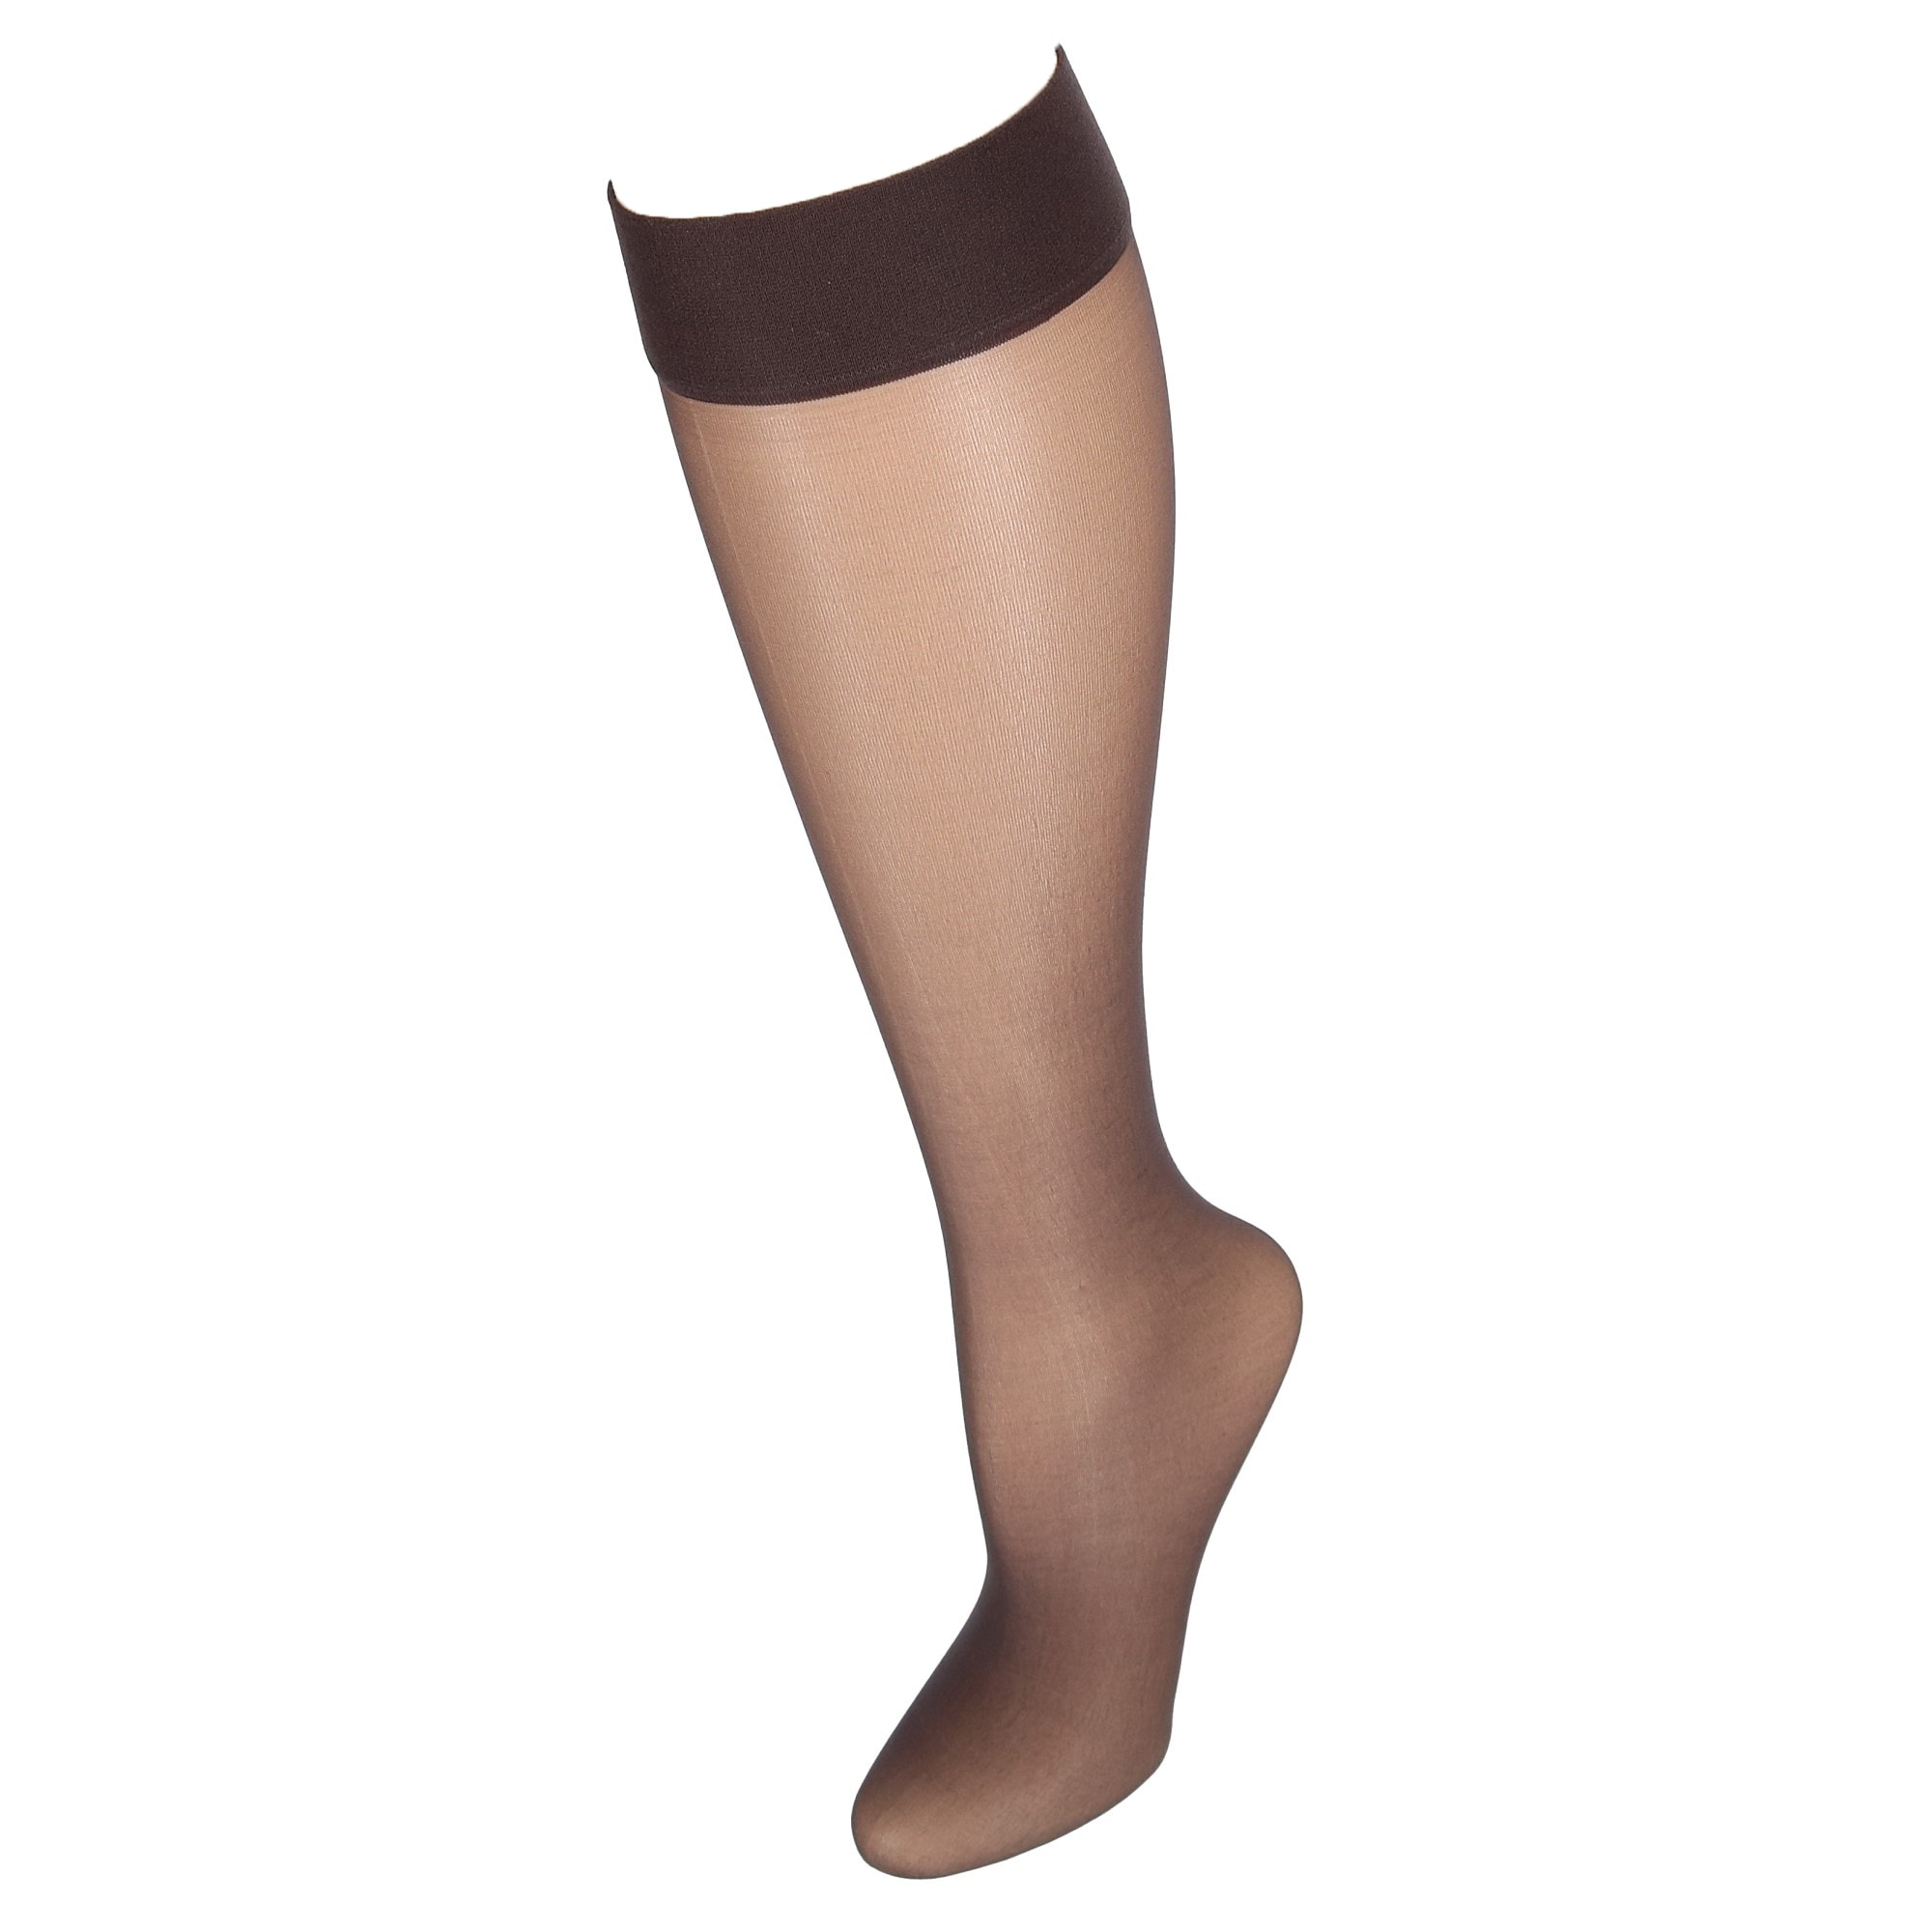 a51c891c67 Shop Hanes Silk Reflections Run Resistant Sheer Knee Highs (2 Pair ...